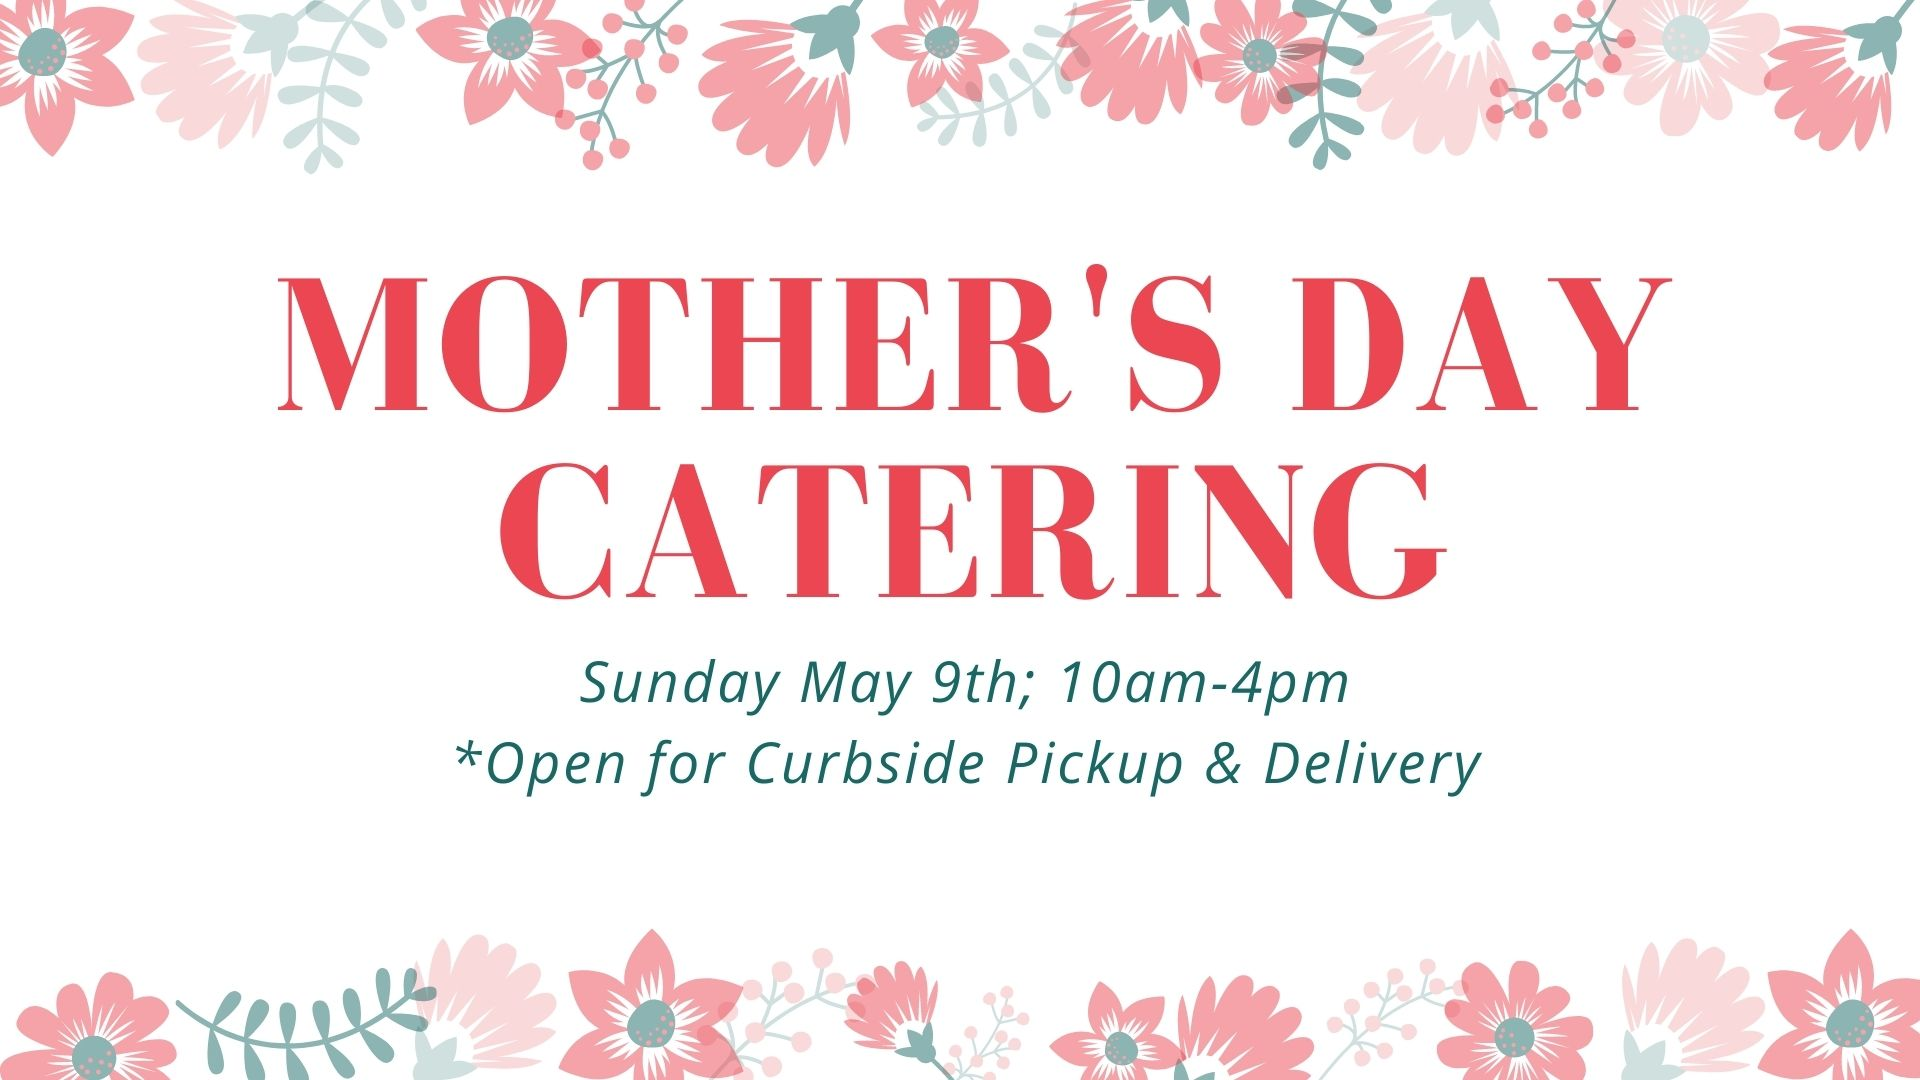 Mother's Day Catering Special